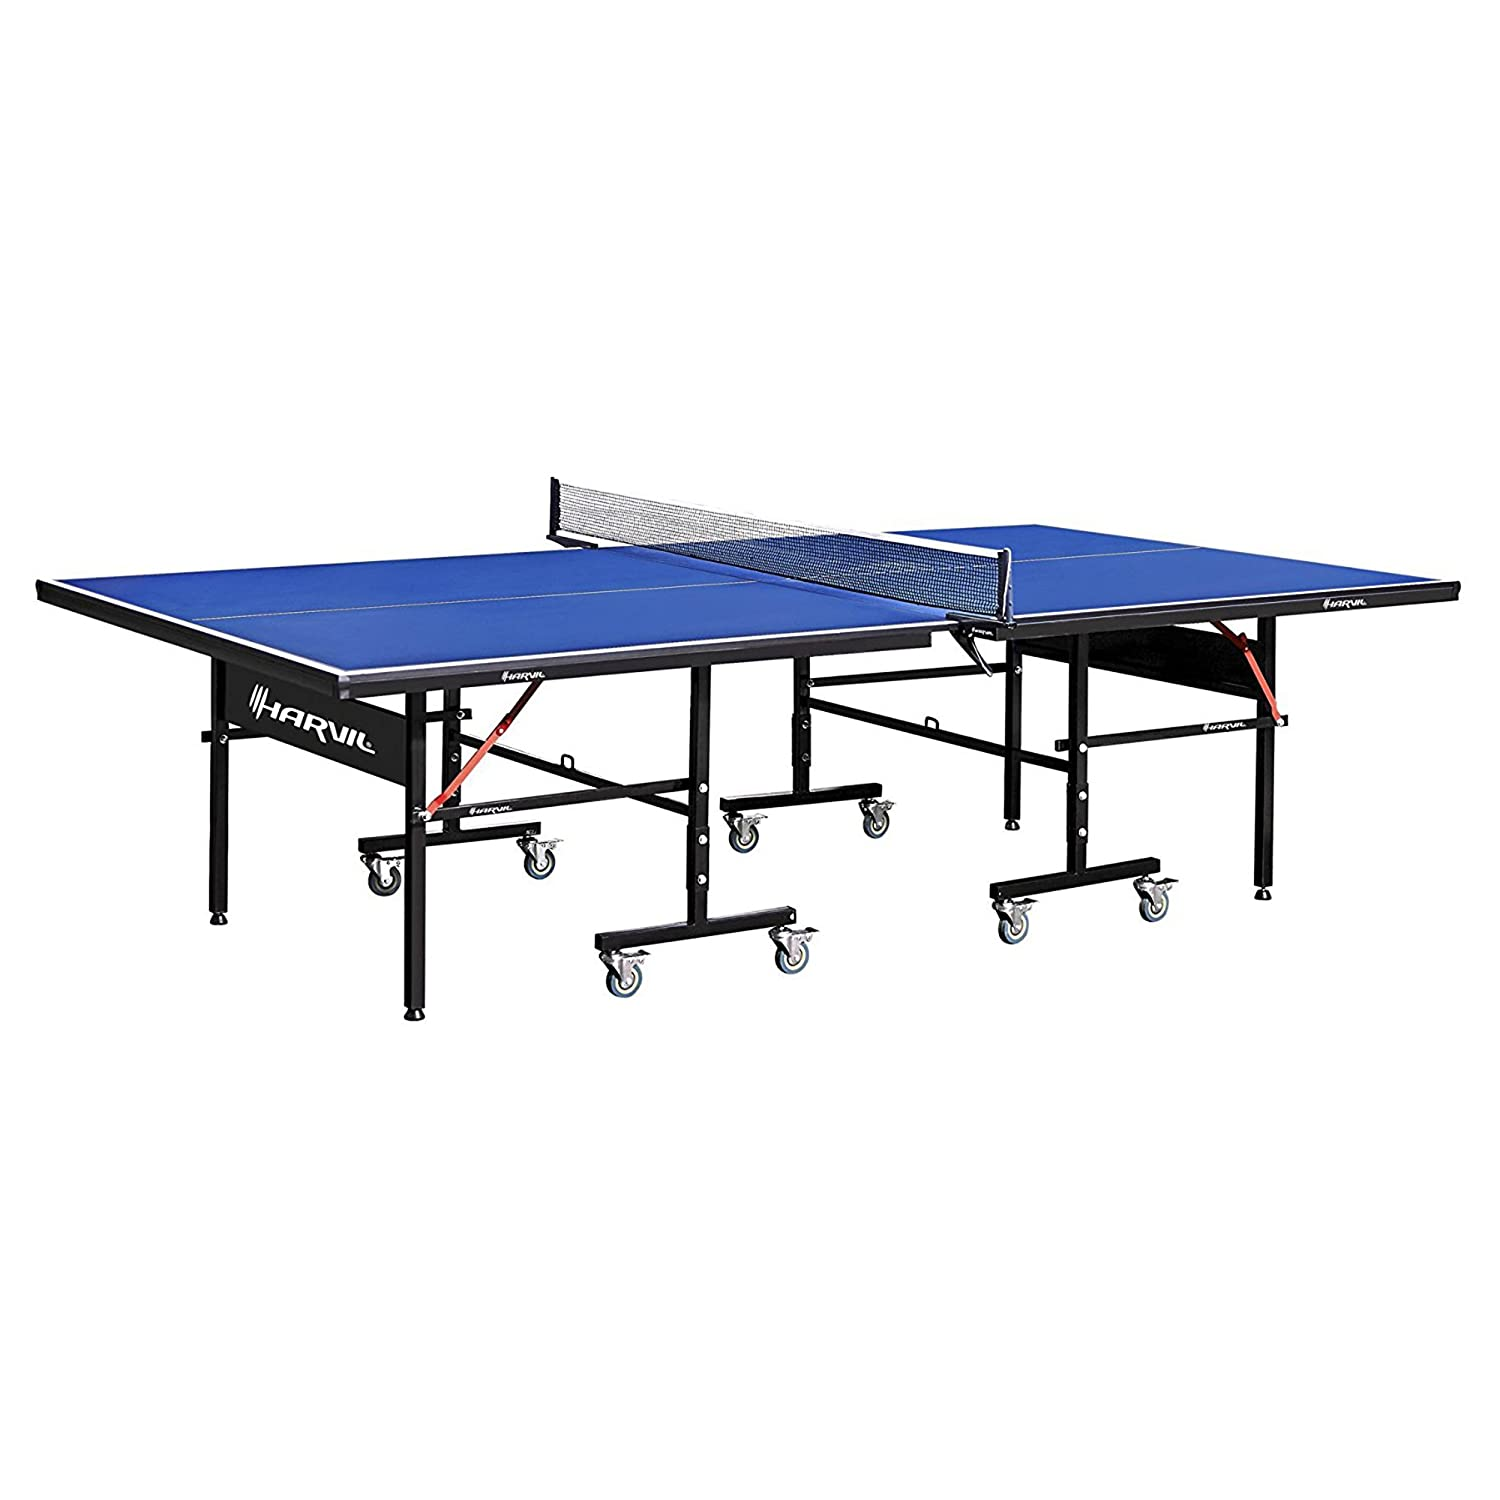 Harvil I Indoor Table Tennis Table – Best Home Ping-pong Table